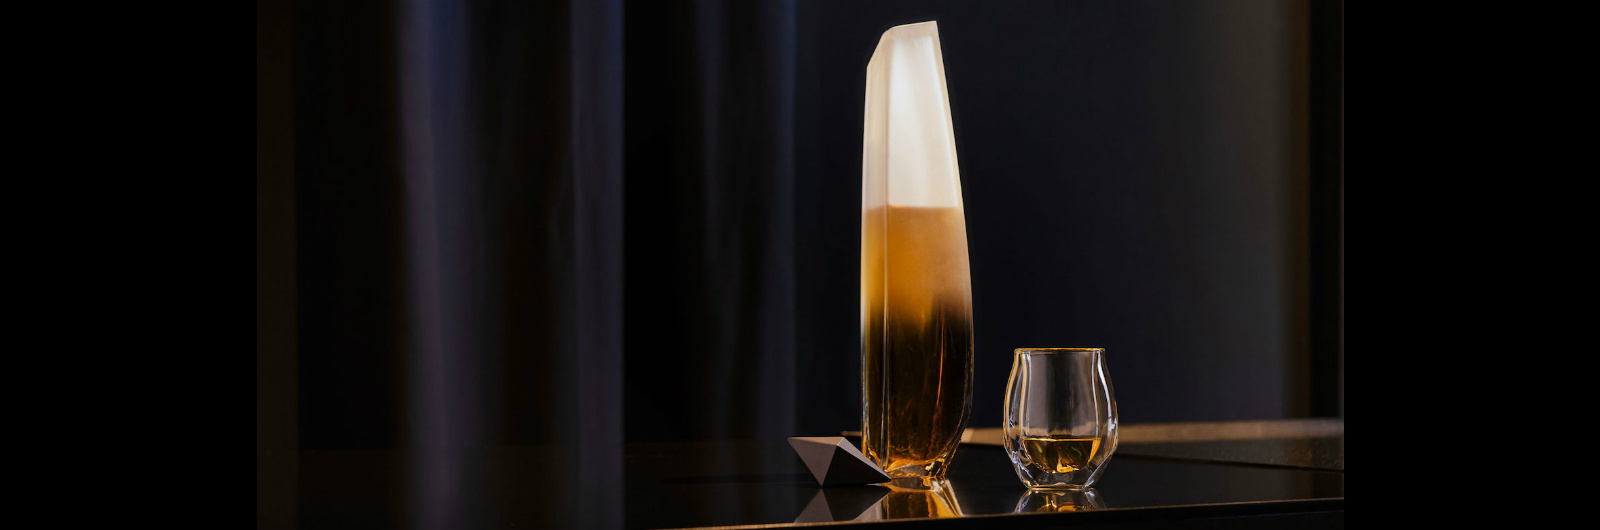 The Raif Whisky Decanter Is the Vessel Your Booze Deserves